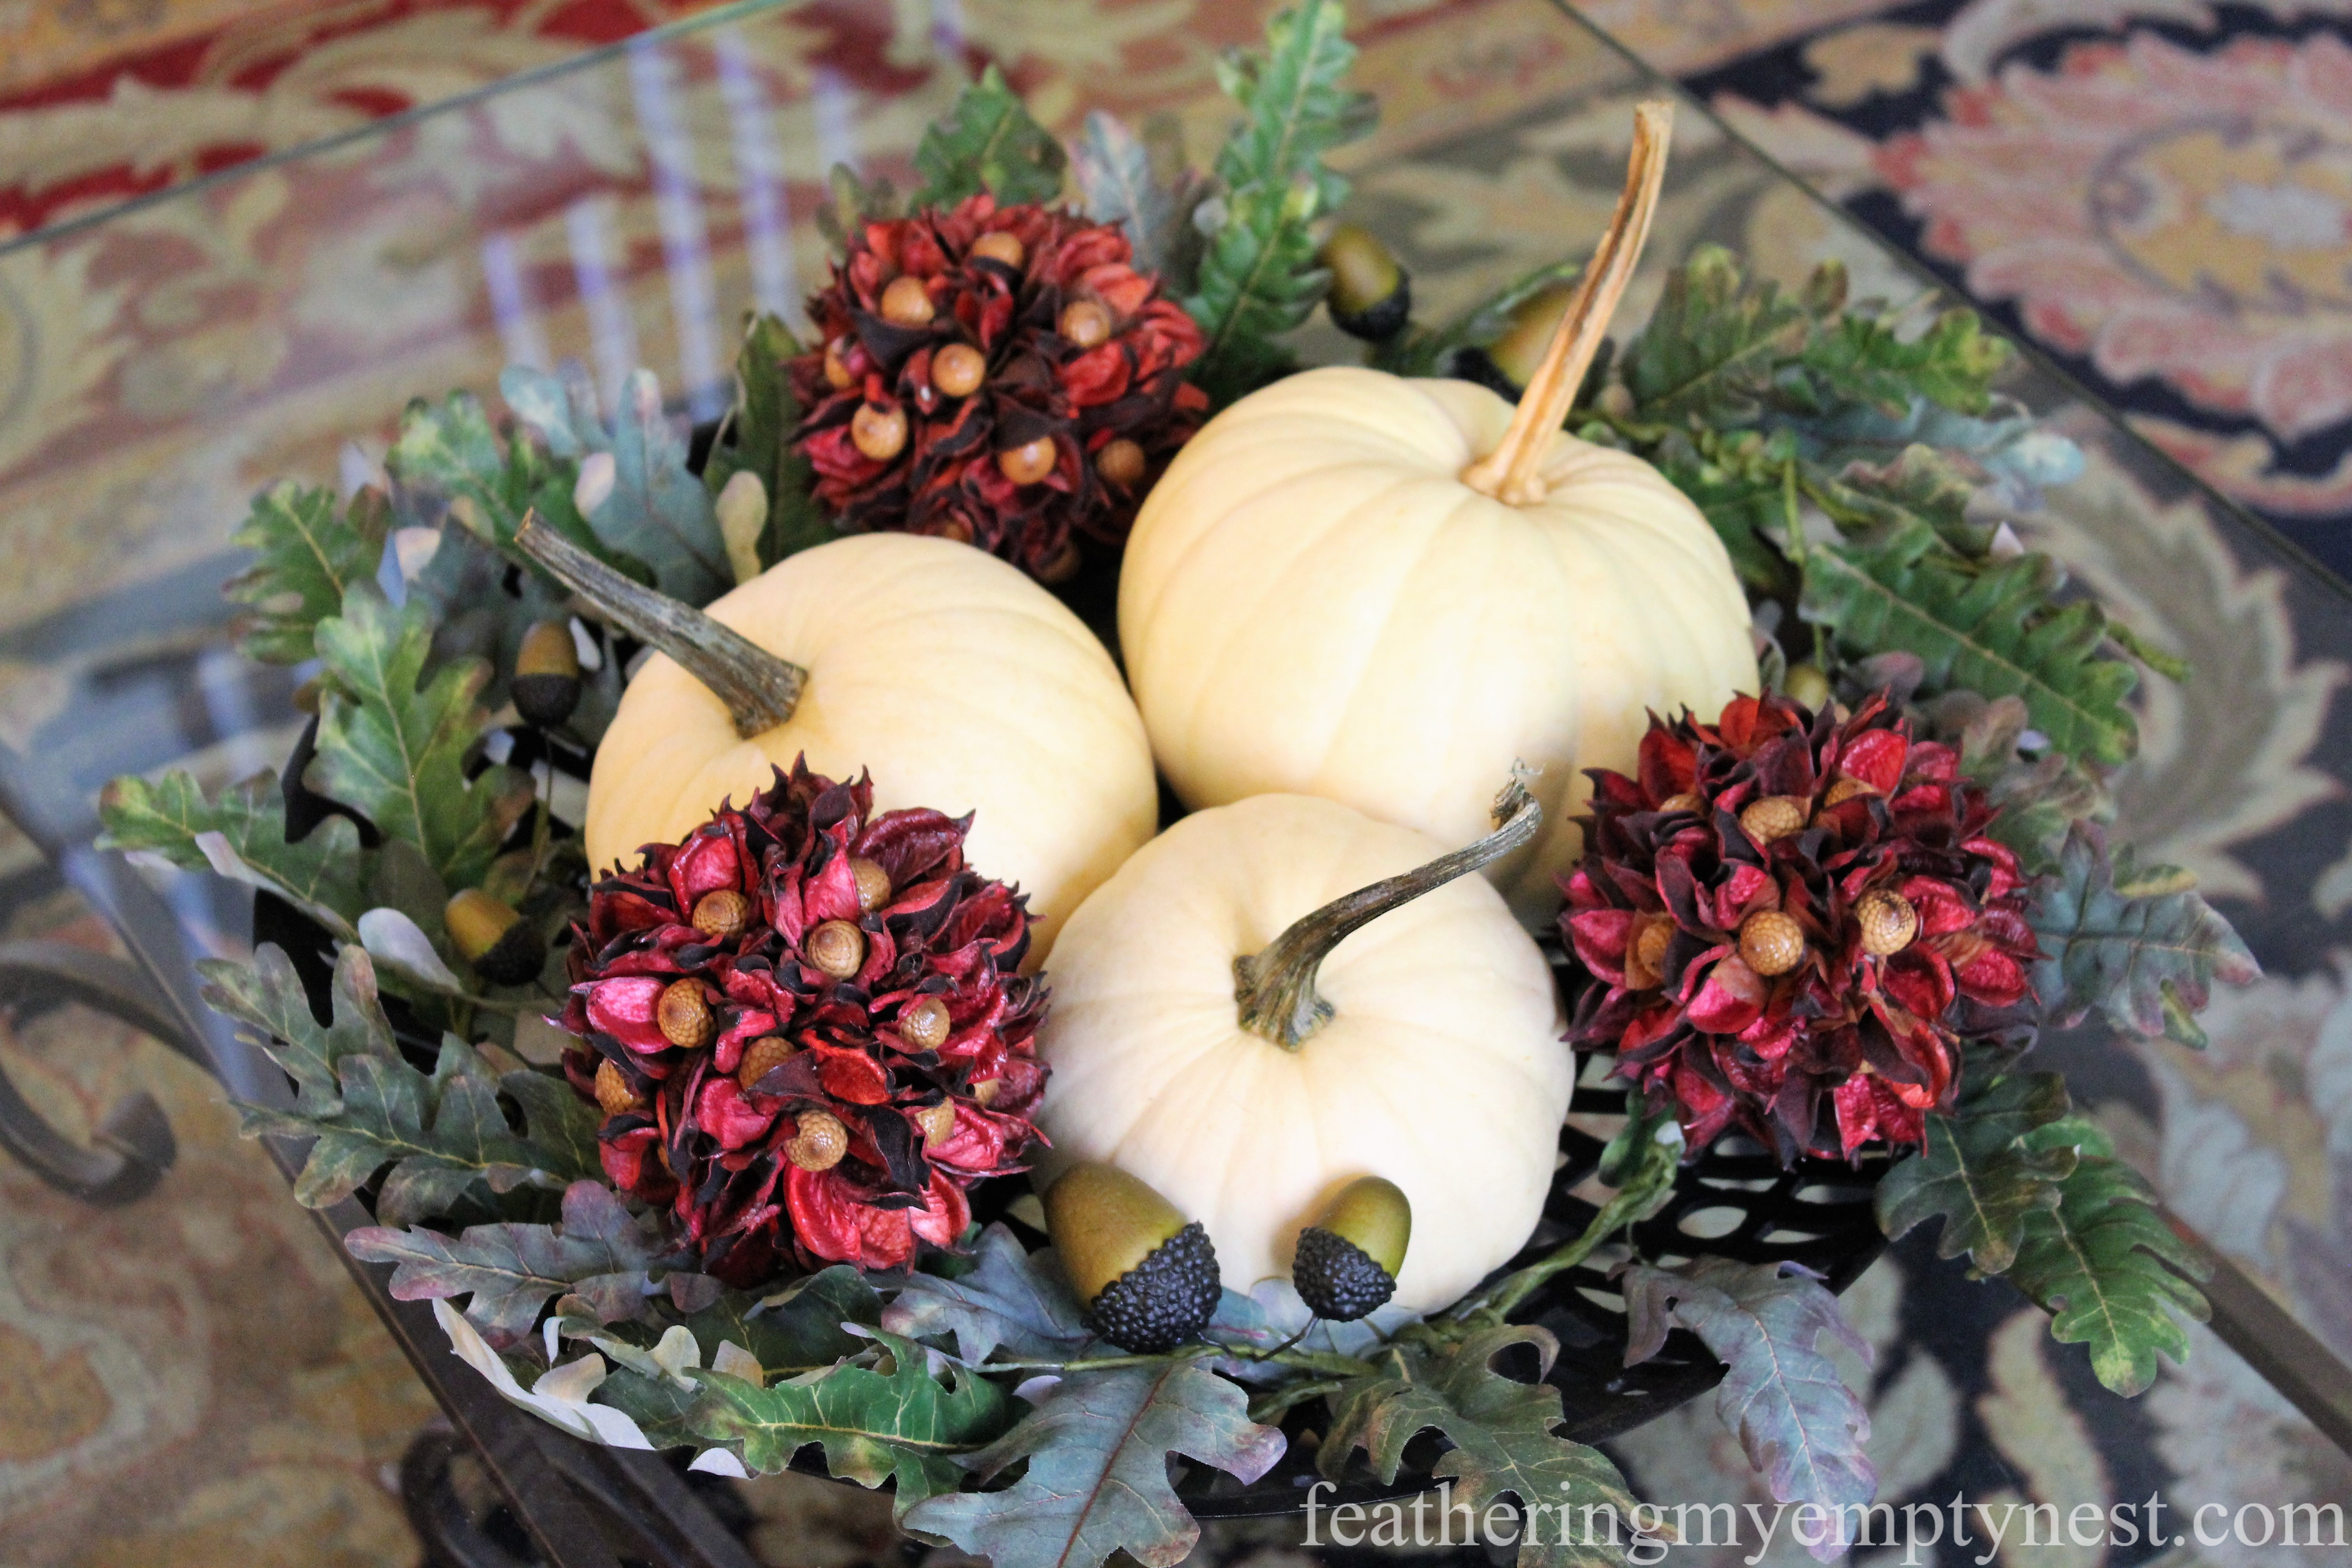 Pumpkins and seed pod balls make up the Fall part of --Easy Fall To Christmas Coffee Table Arrangements